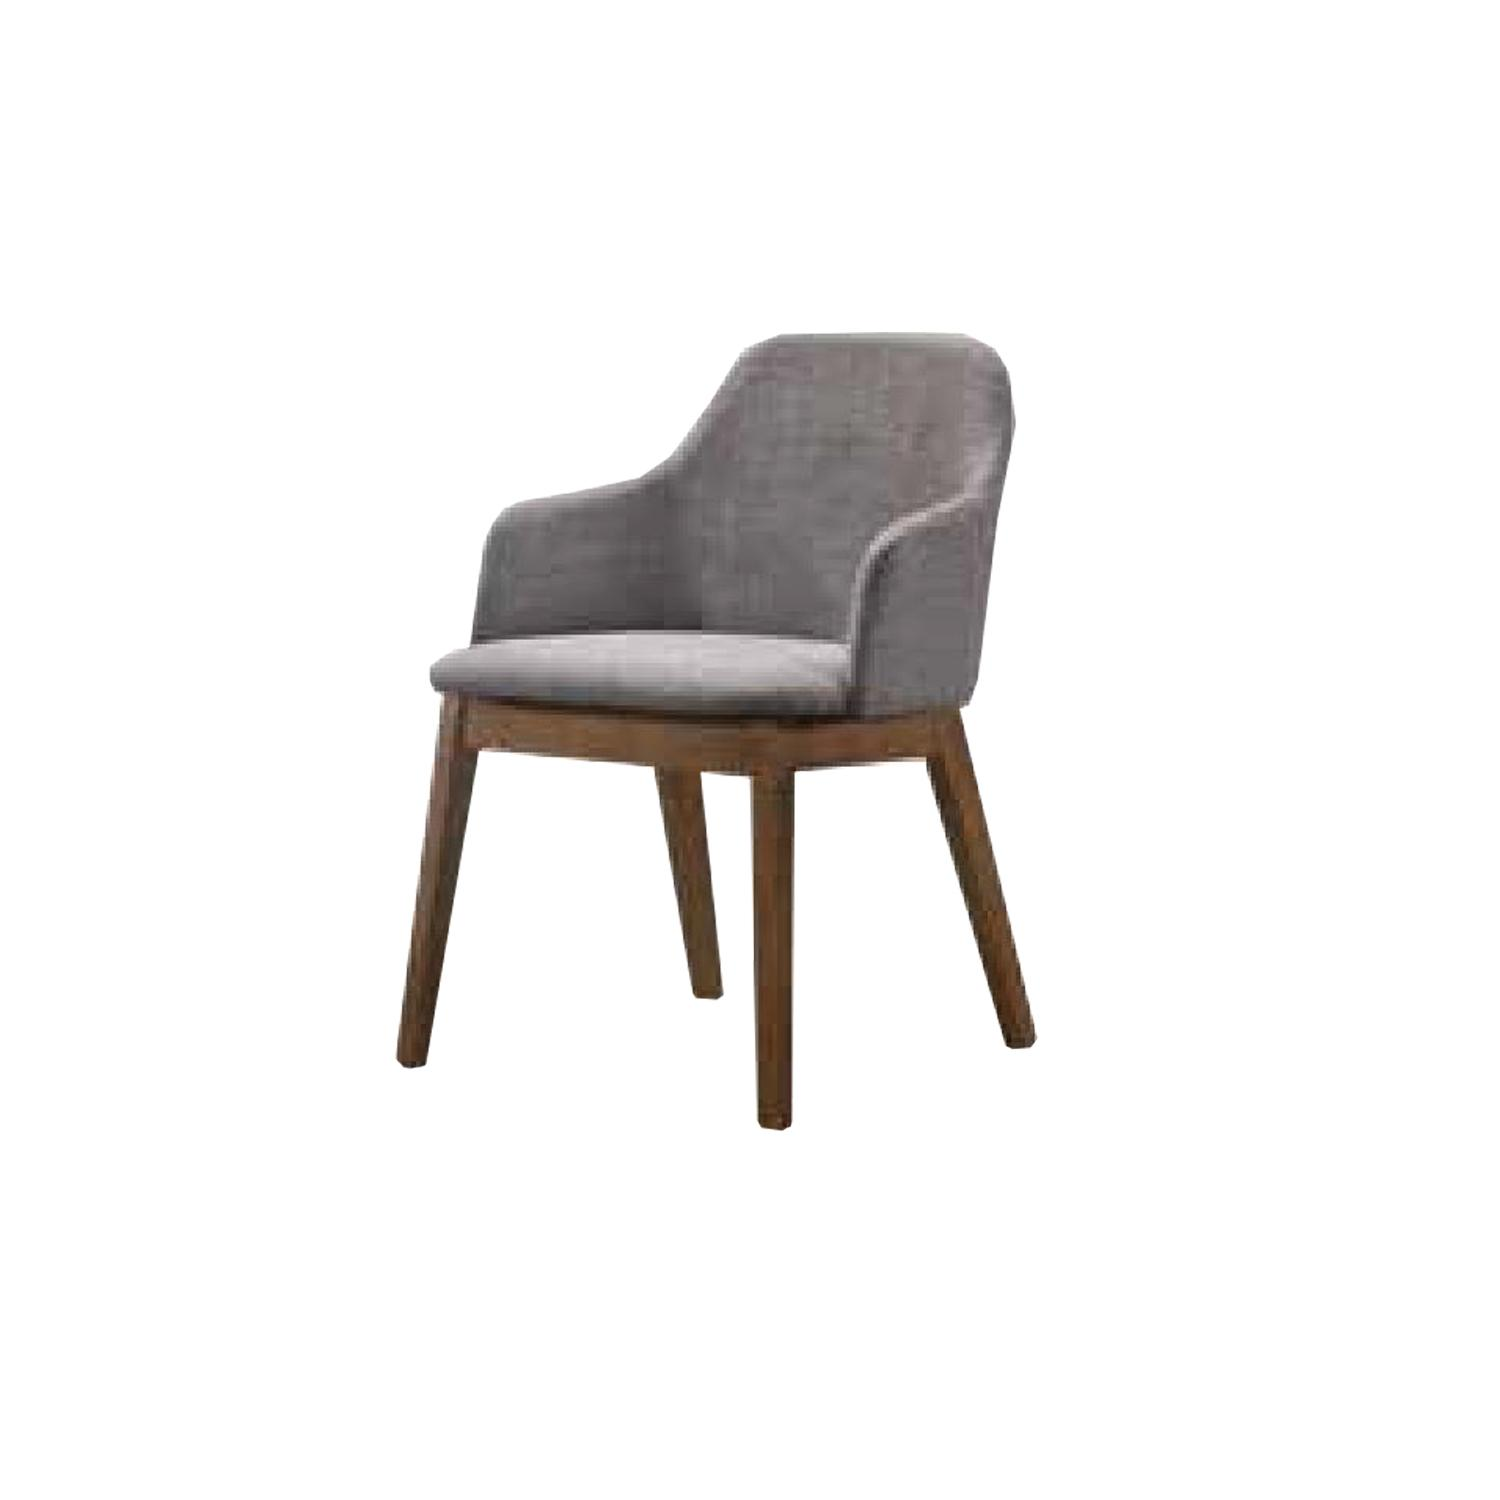 Beatrice 1 Dining Chair